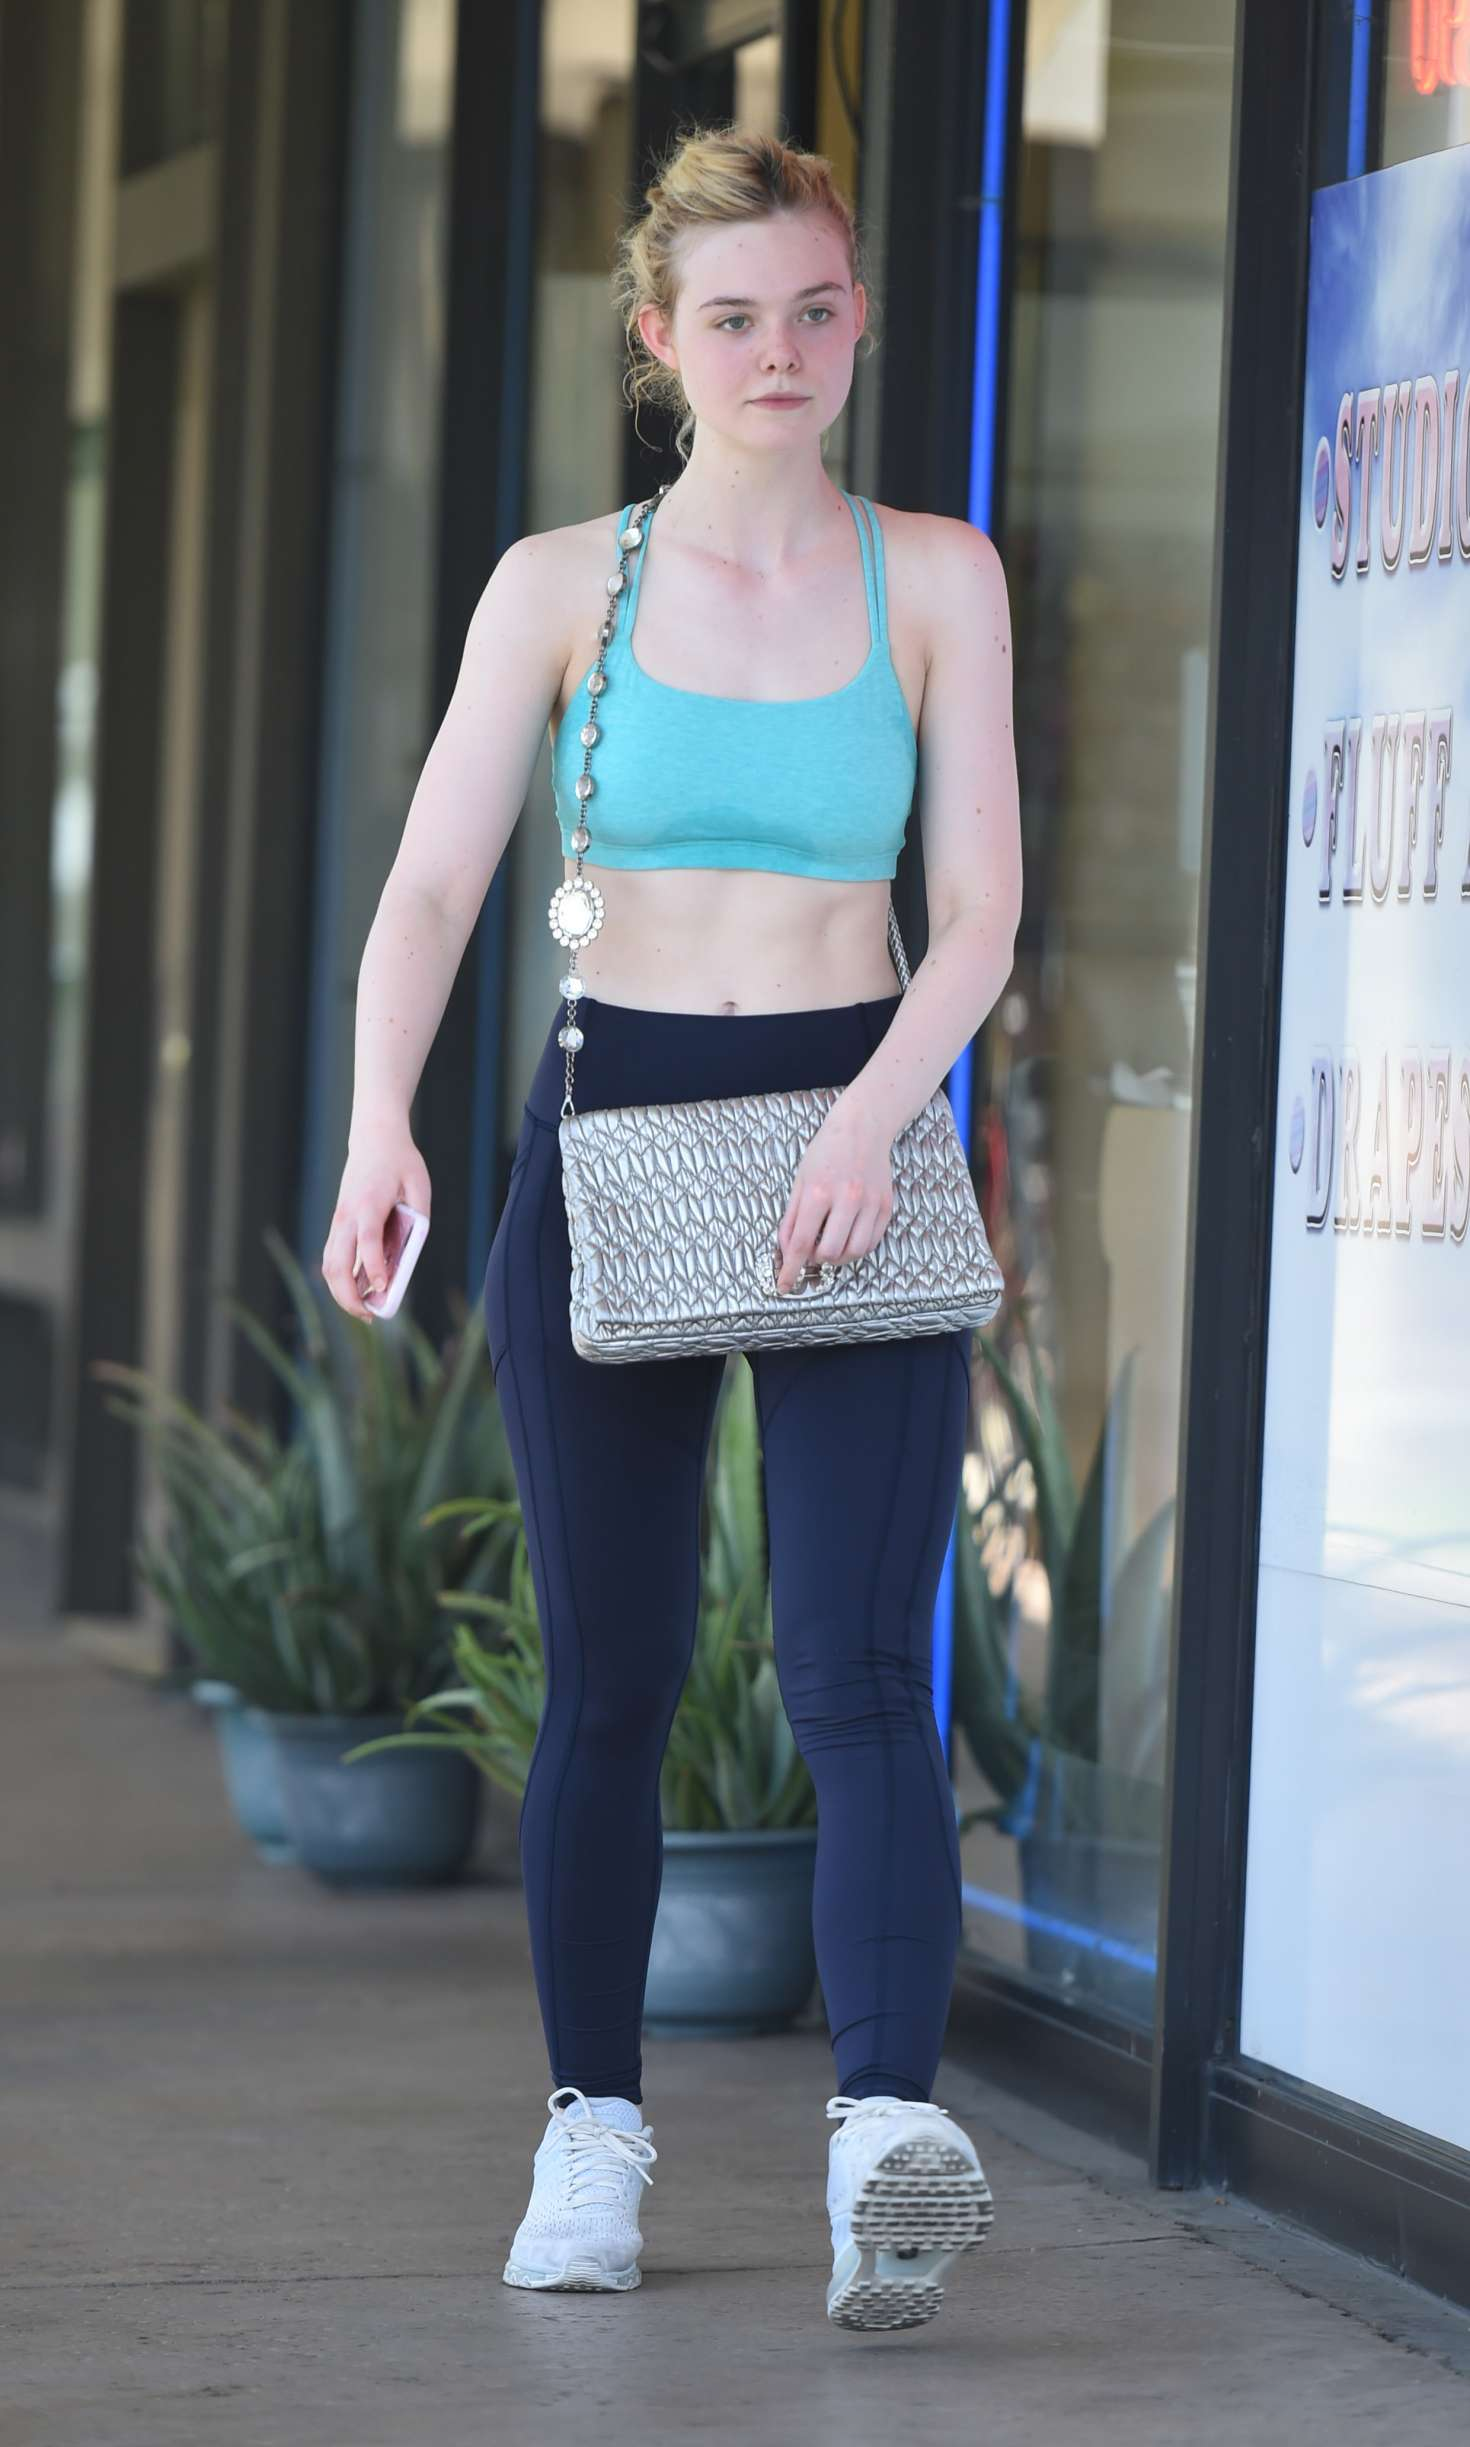 Jojo levesque sexy work out - 1 6